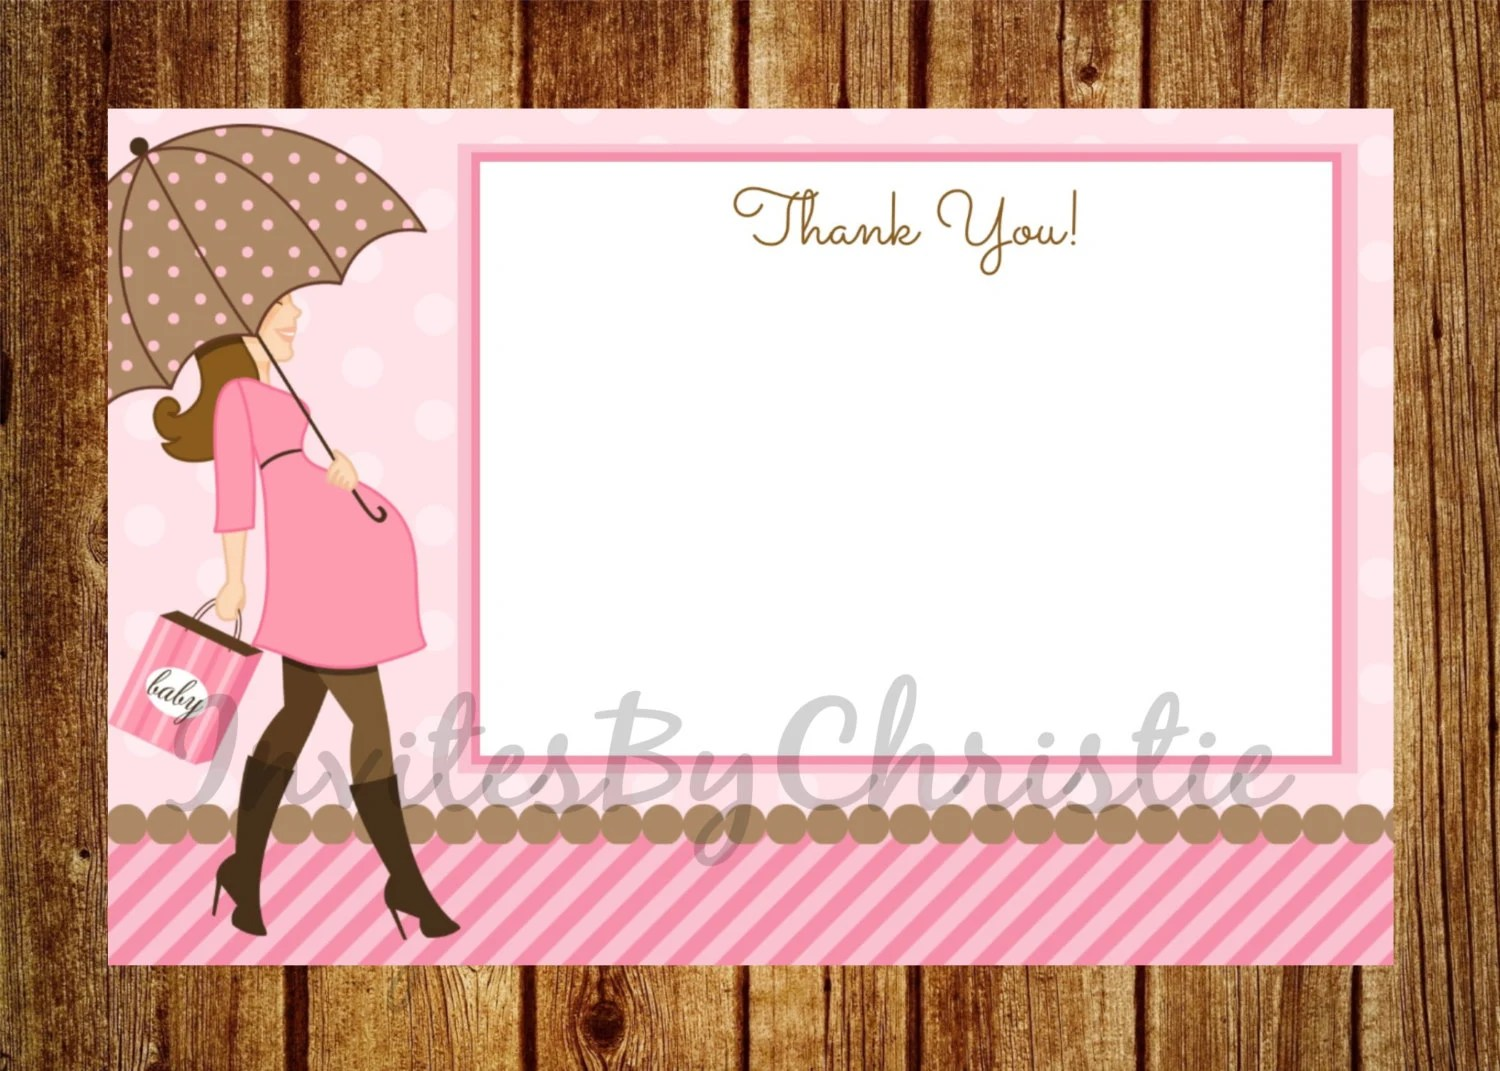 Instant Download Pregnant Woman With Umbrella Thank You Card